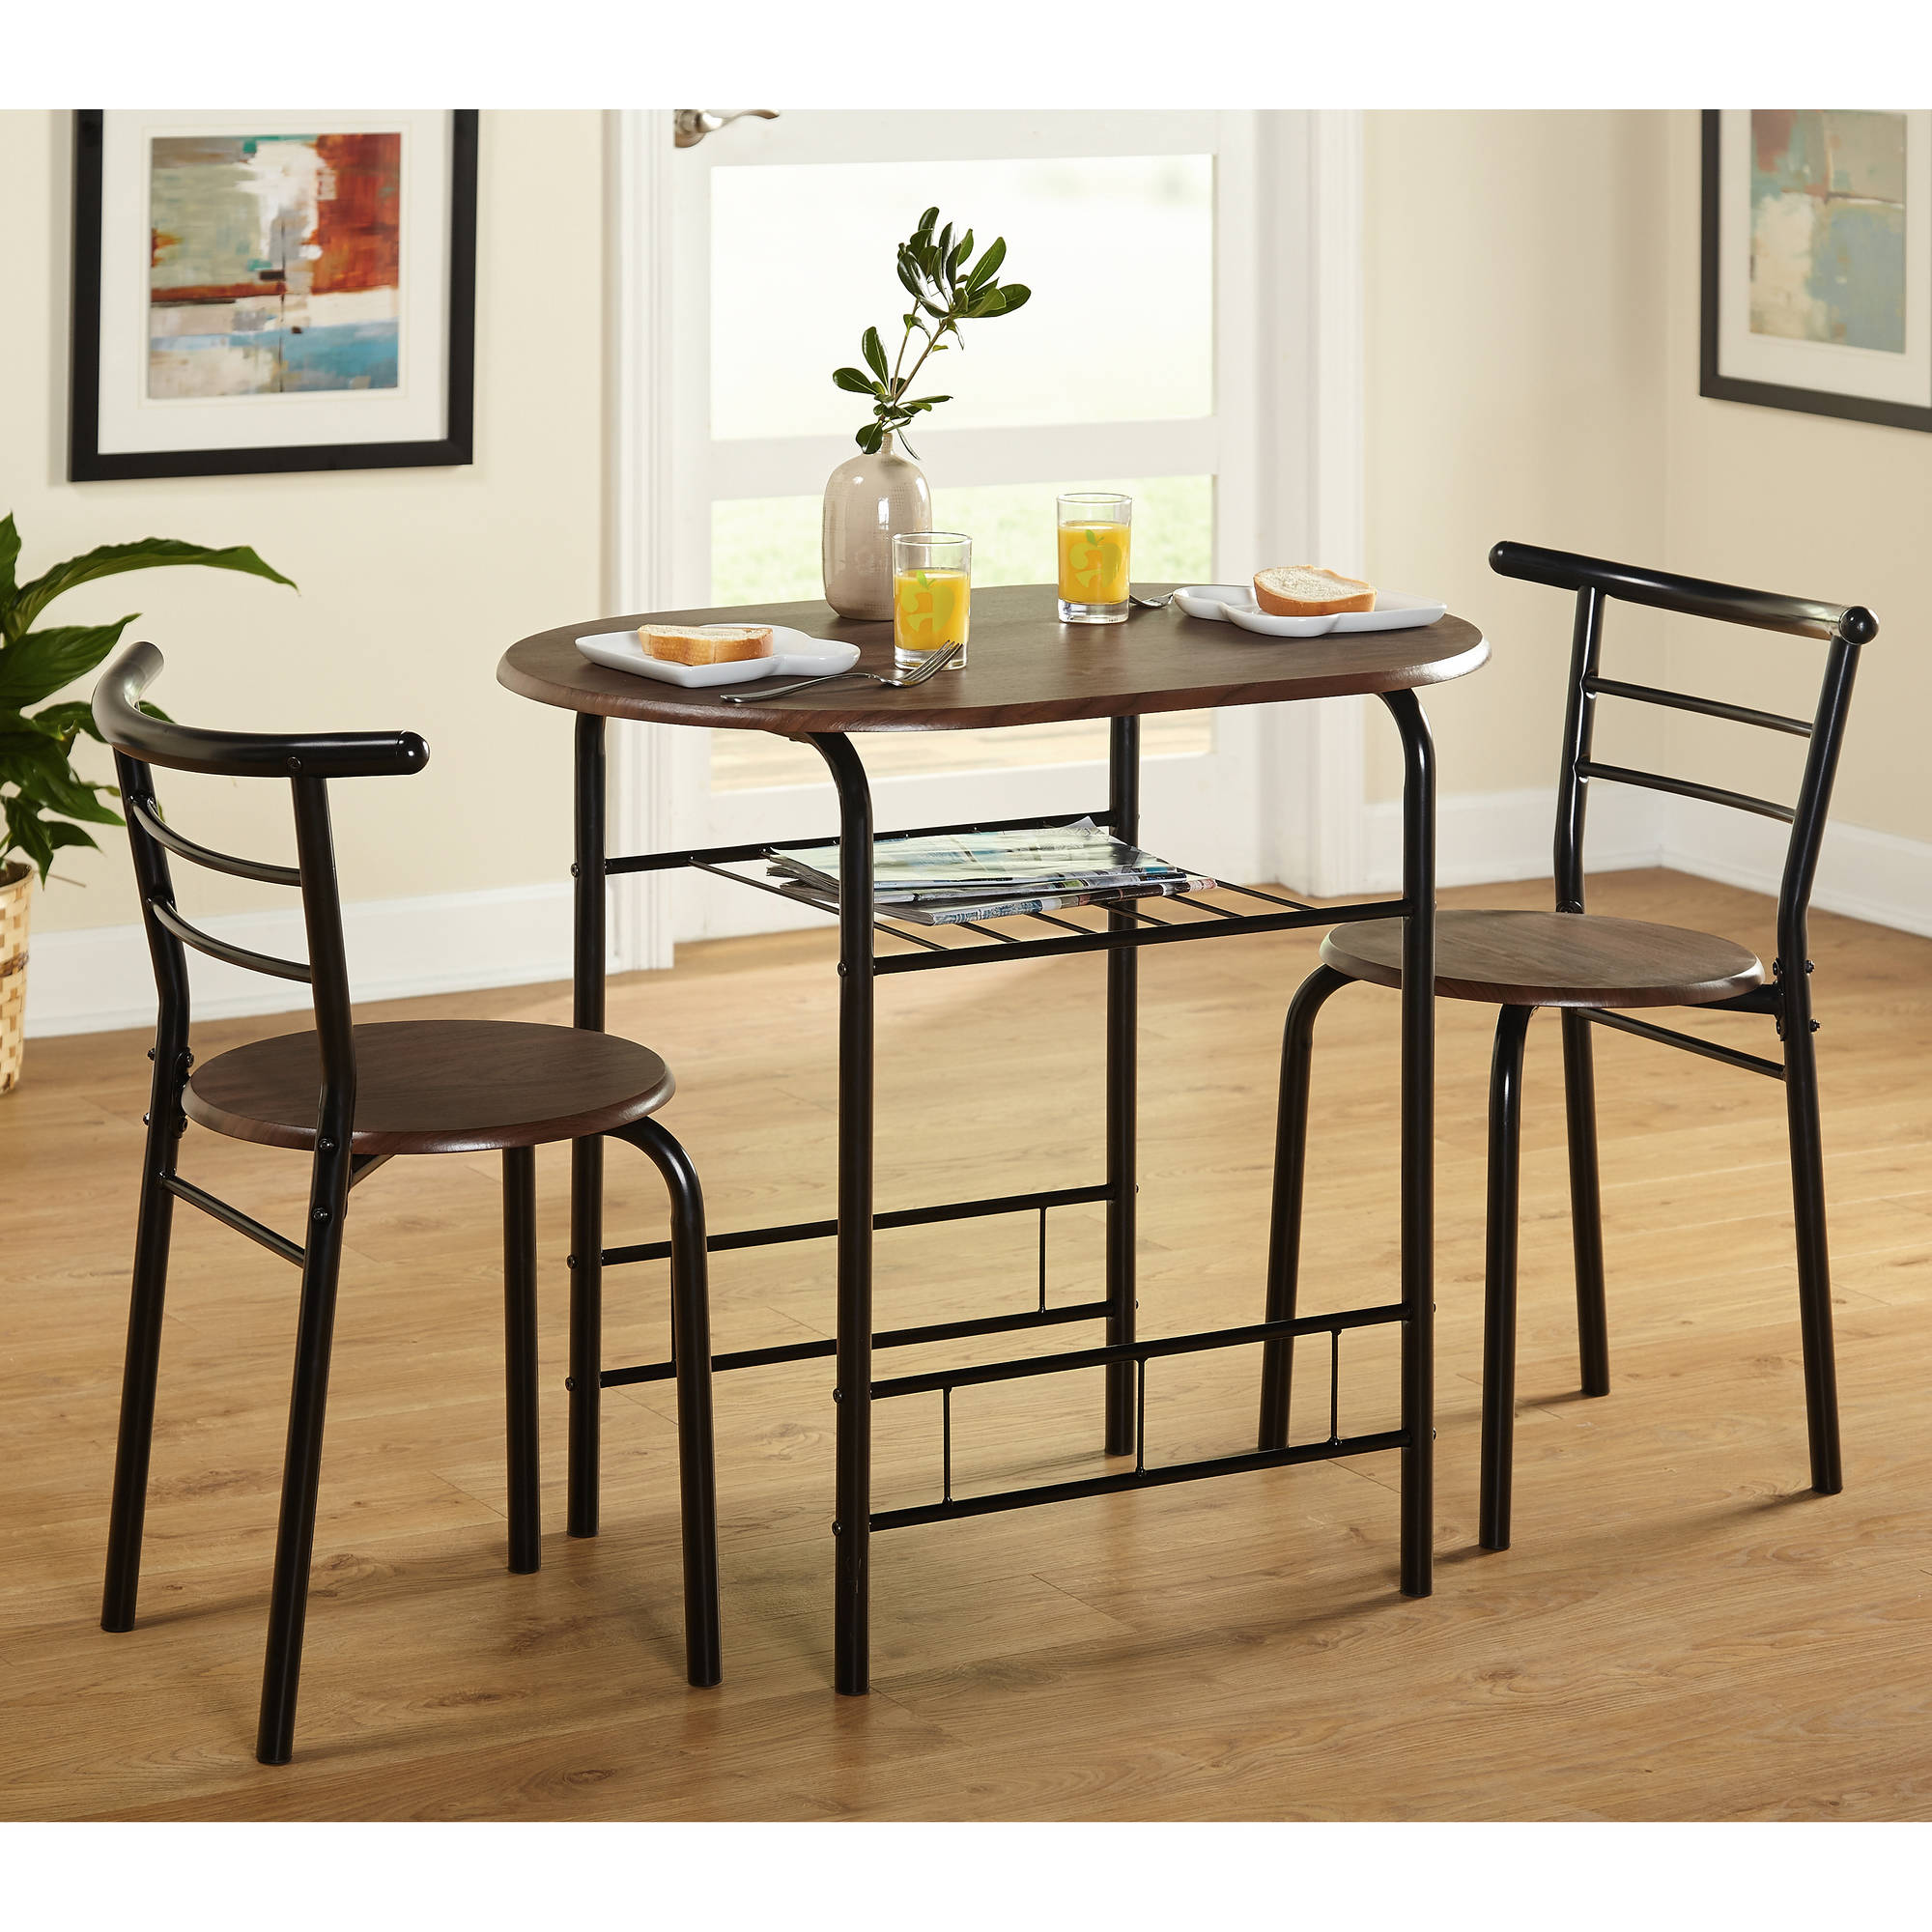 Awesome 3-Piece Bistro Set, Multiple Colors bistro sets for kitchen